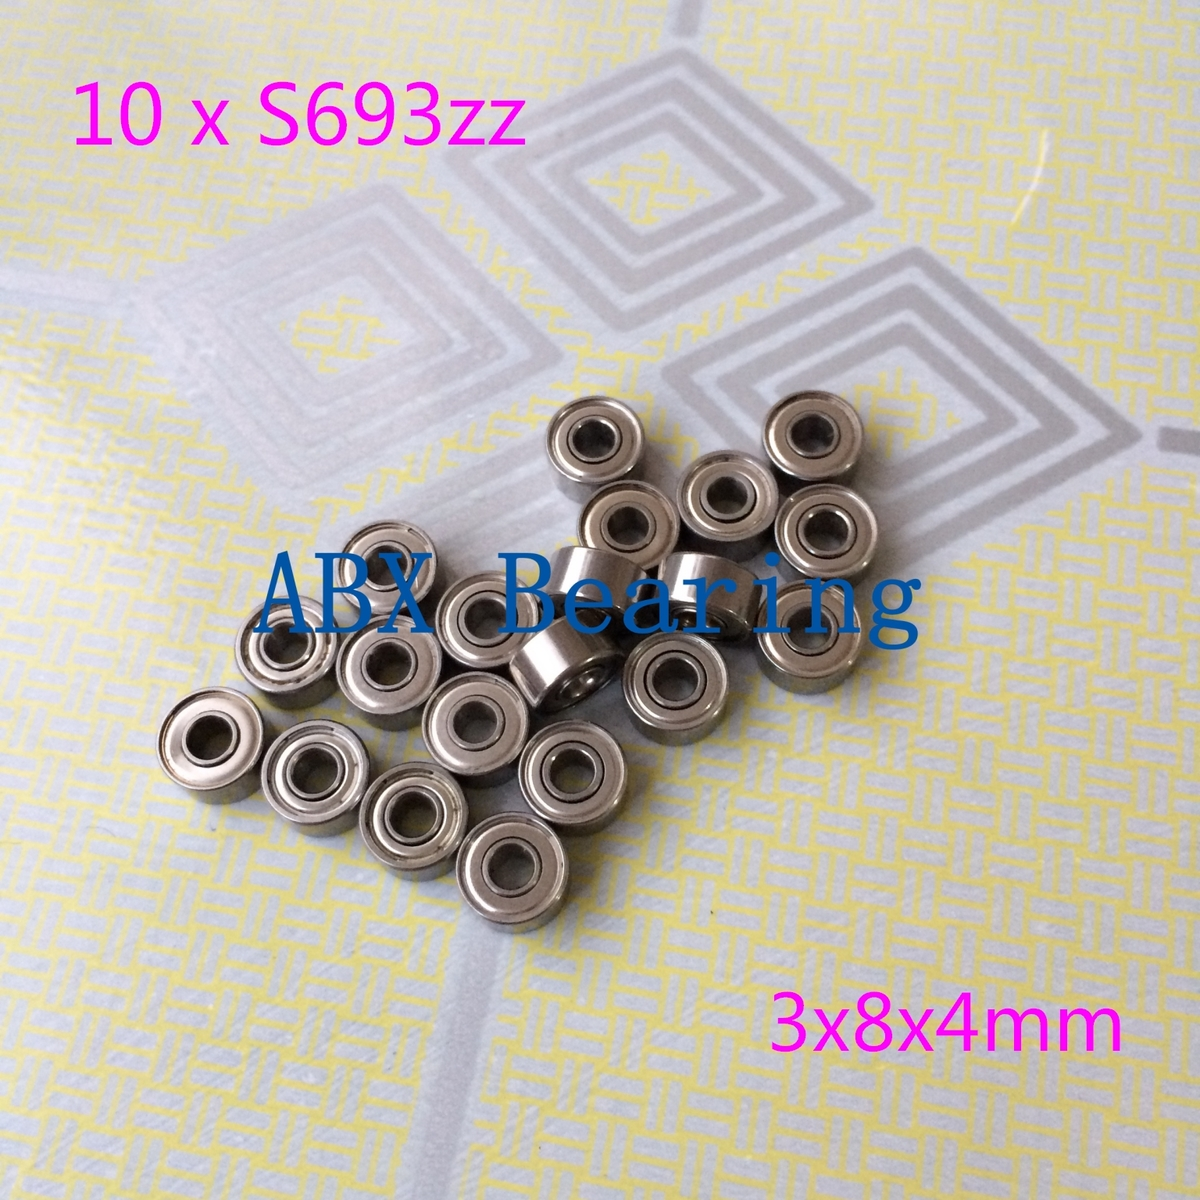 Free Shipping 10 PCS S693ZZ S693Z S693 693ZZ 693 Bearings 3x8x4 mm Stainless Steel Ball Bearings DDR-830ZZ SSR-830ZZ 3*8*4 mm toshiba portege z 830